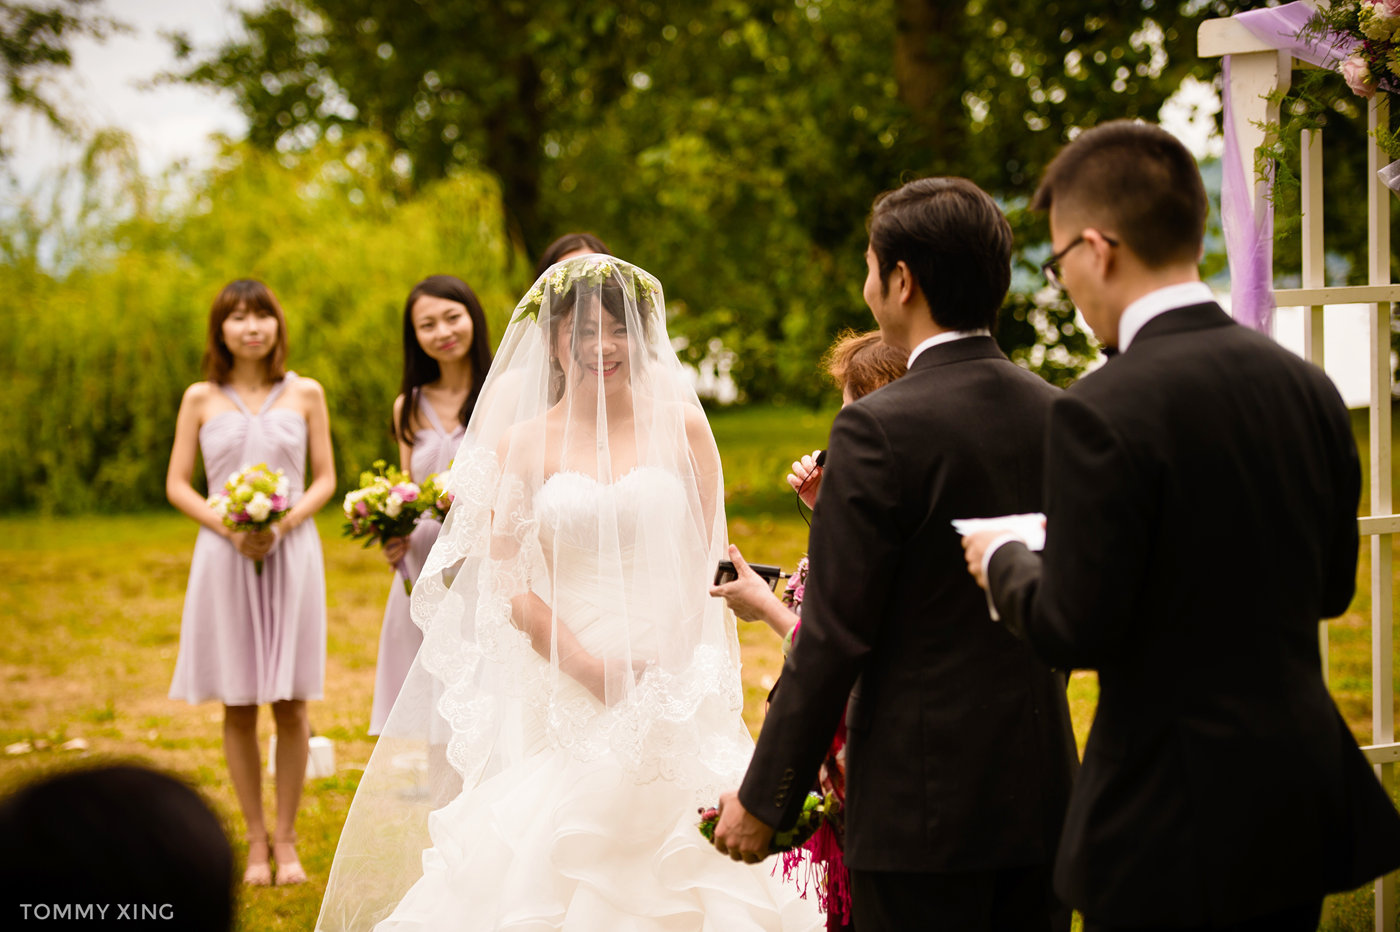 Seattle Wedding and pre wedding Los Angeles Tommy Xing Photography 西雅图洛杉矶旧金山婚礼婚纱照摄影师 079.jpg